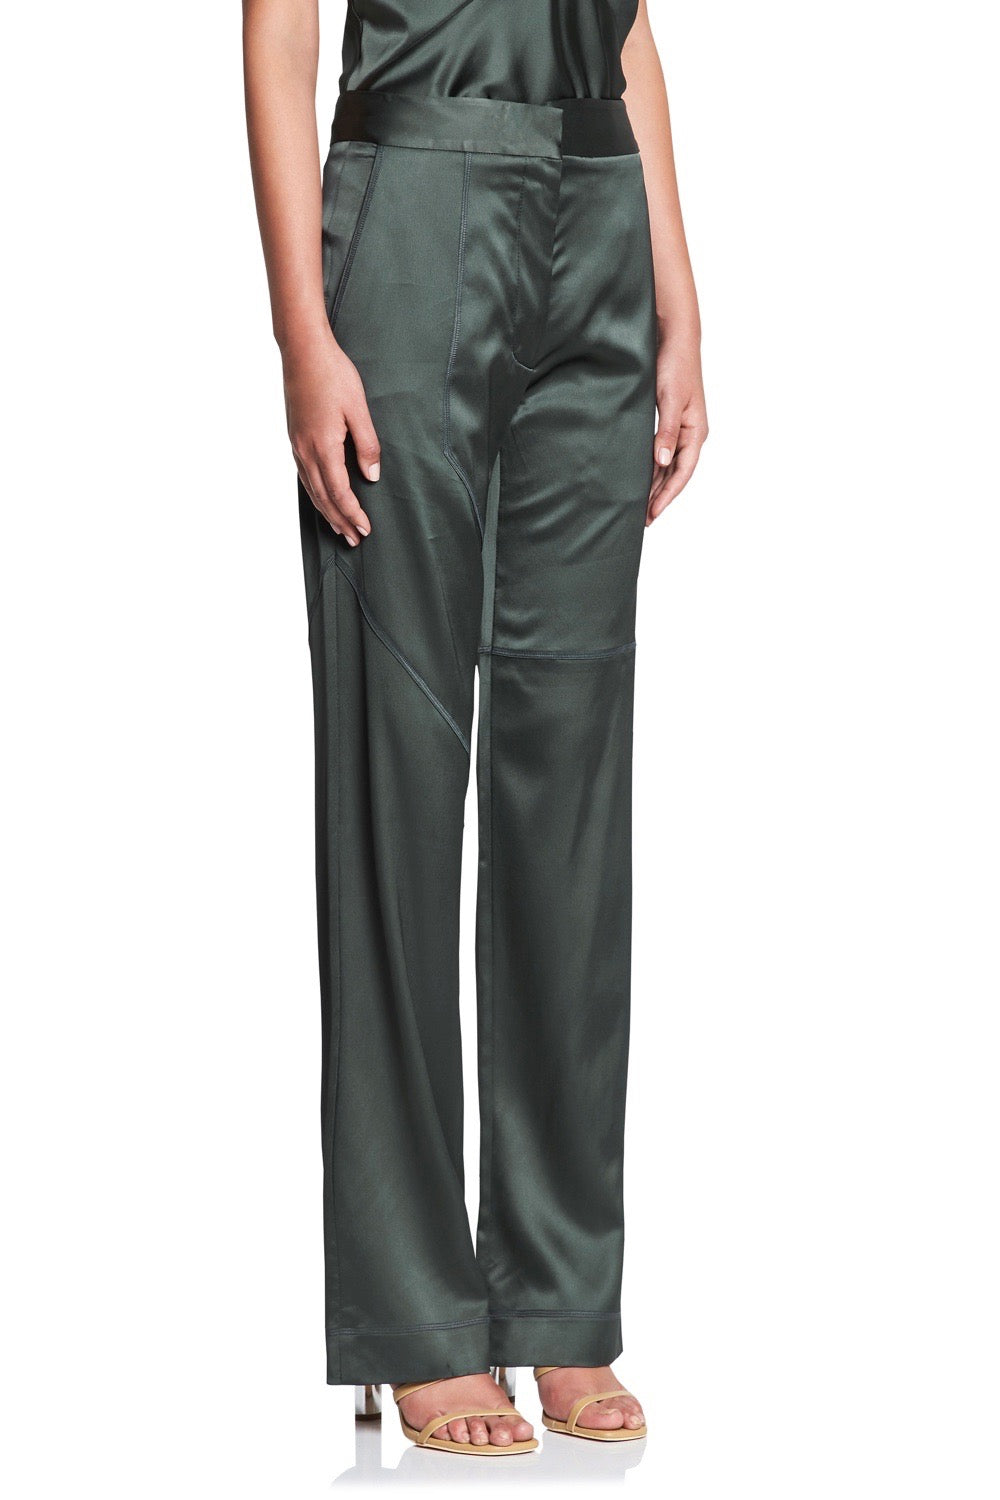 GREEN LIGHT MANSTYLE PANT